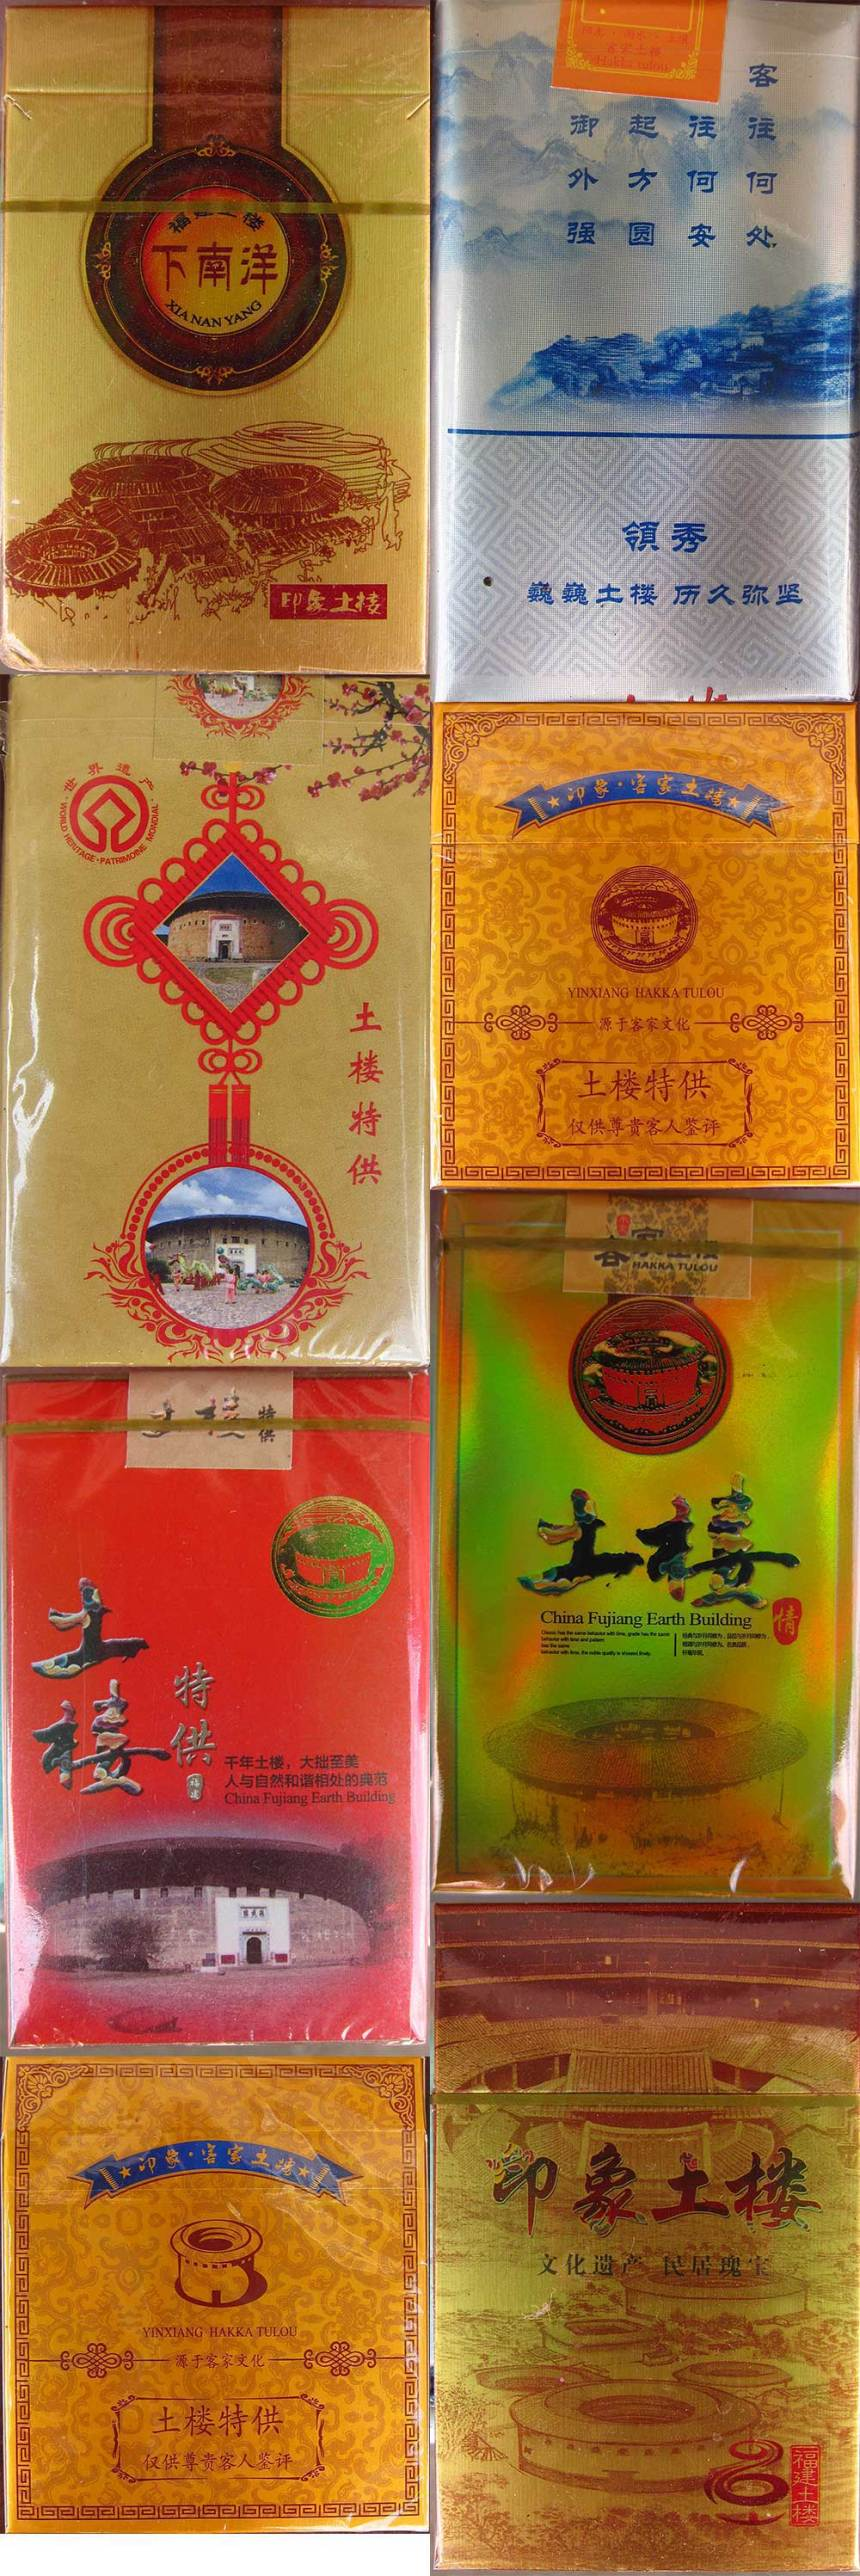 Tulou cigarette packs